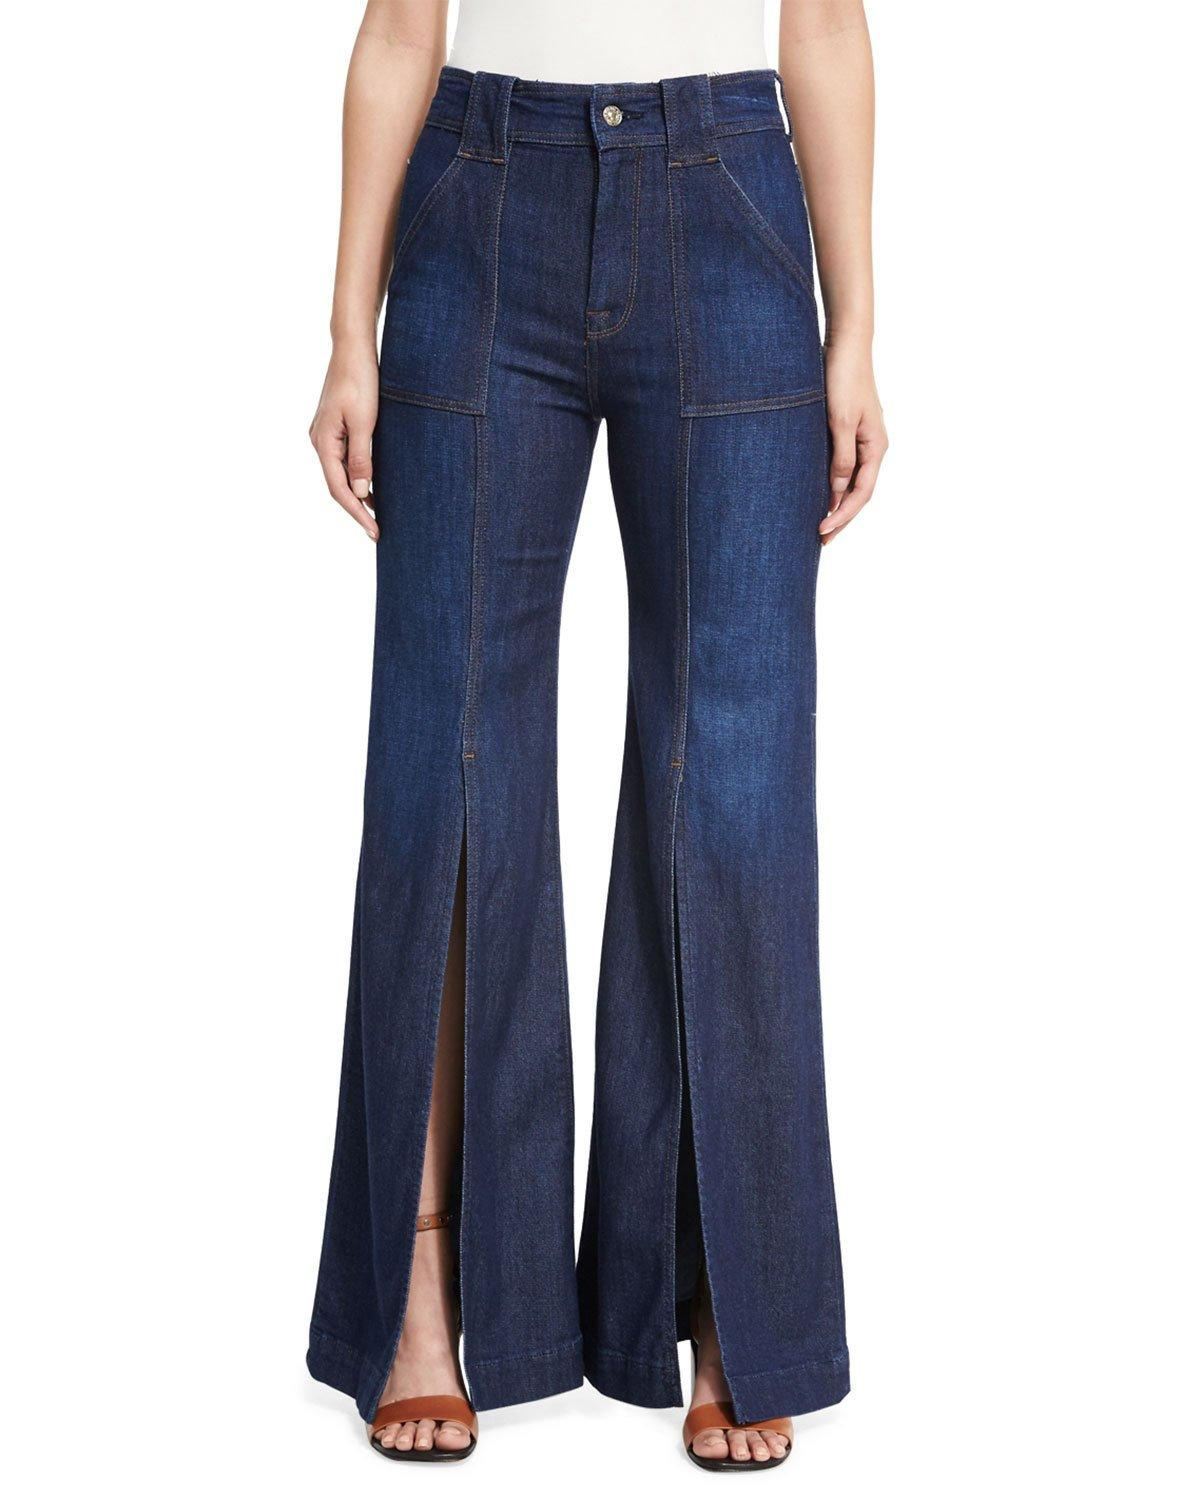 Lyst 7 For All Mankind Palazzo Slit Front High Waist